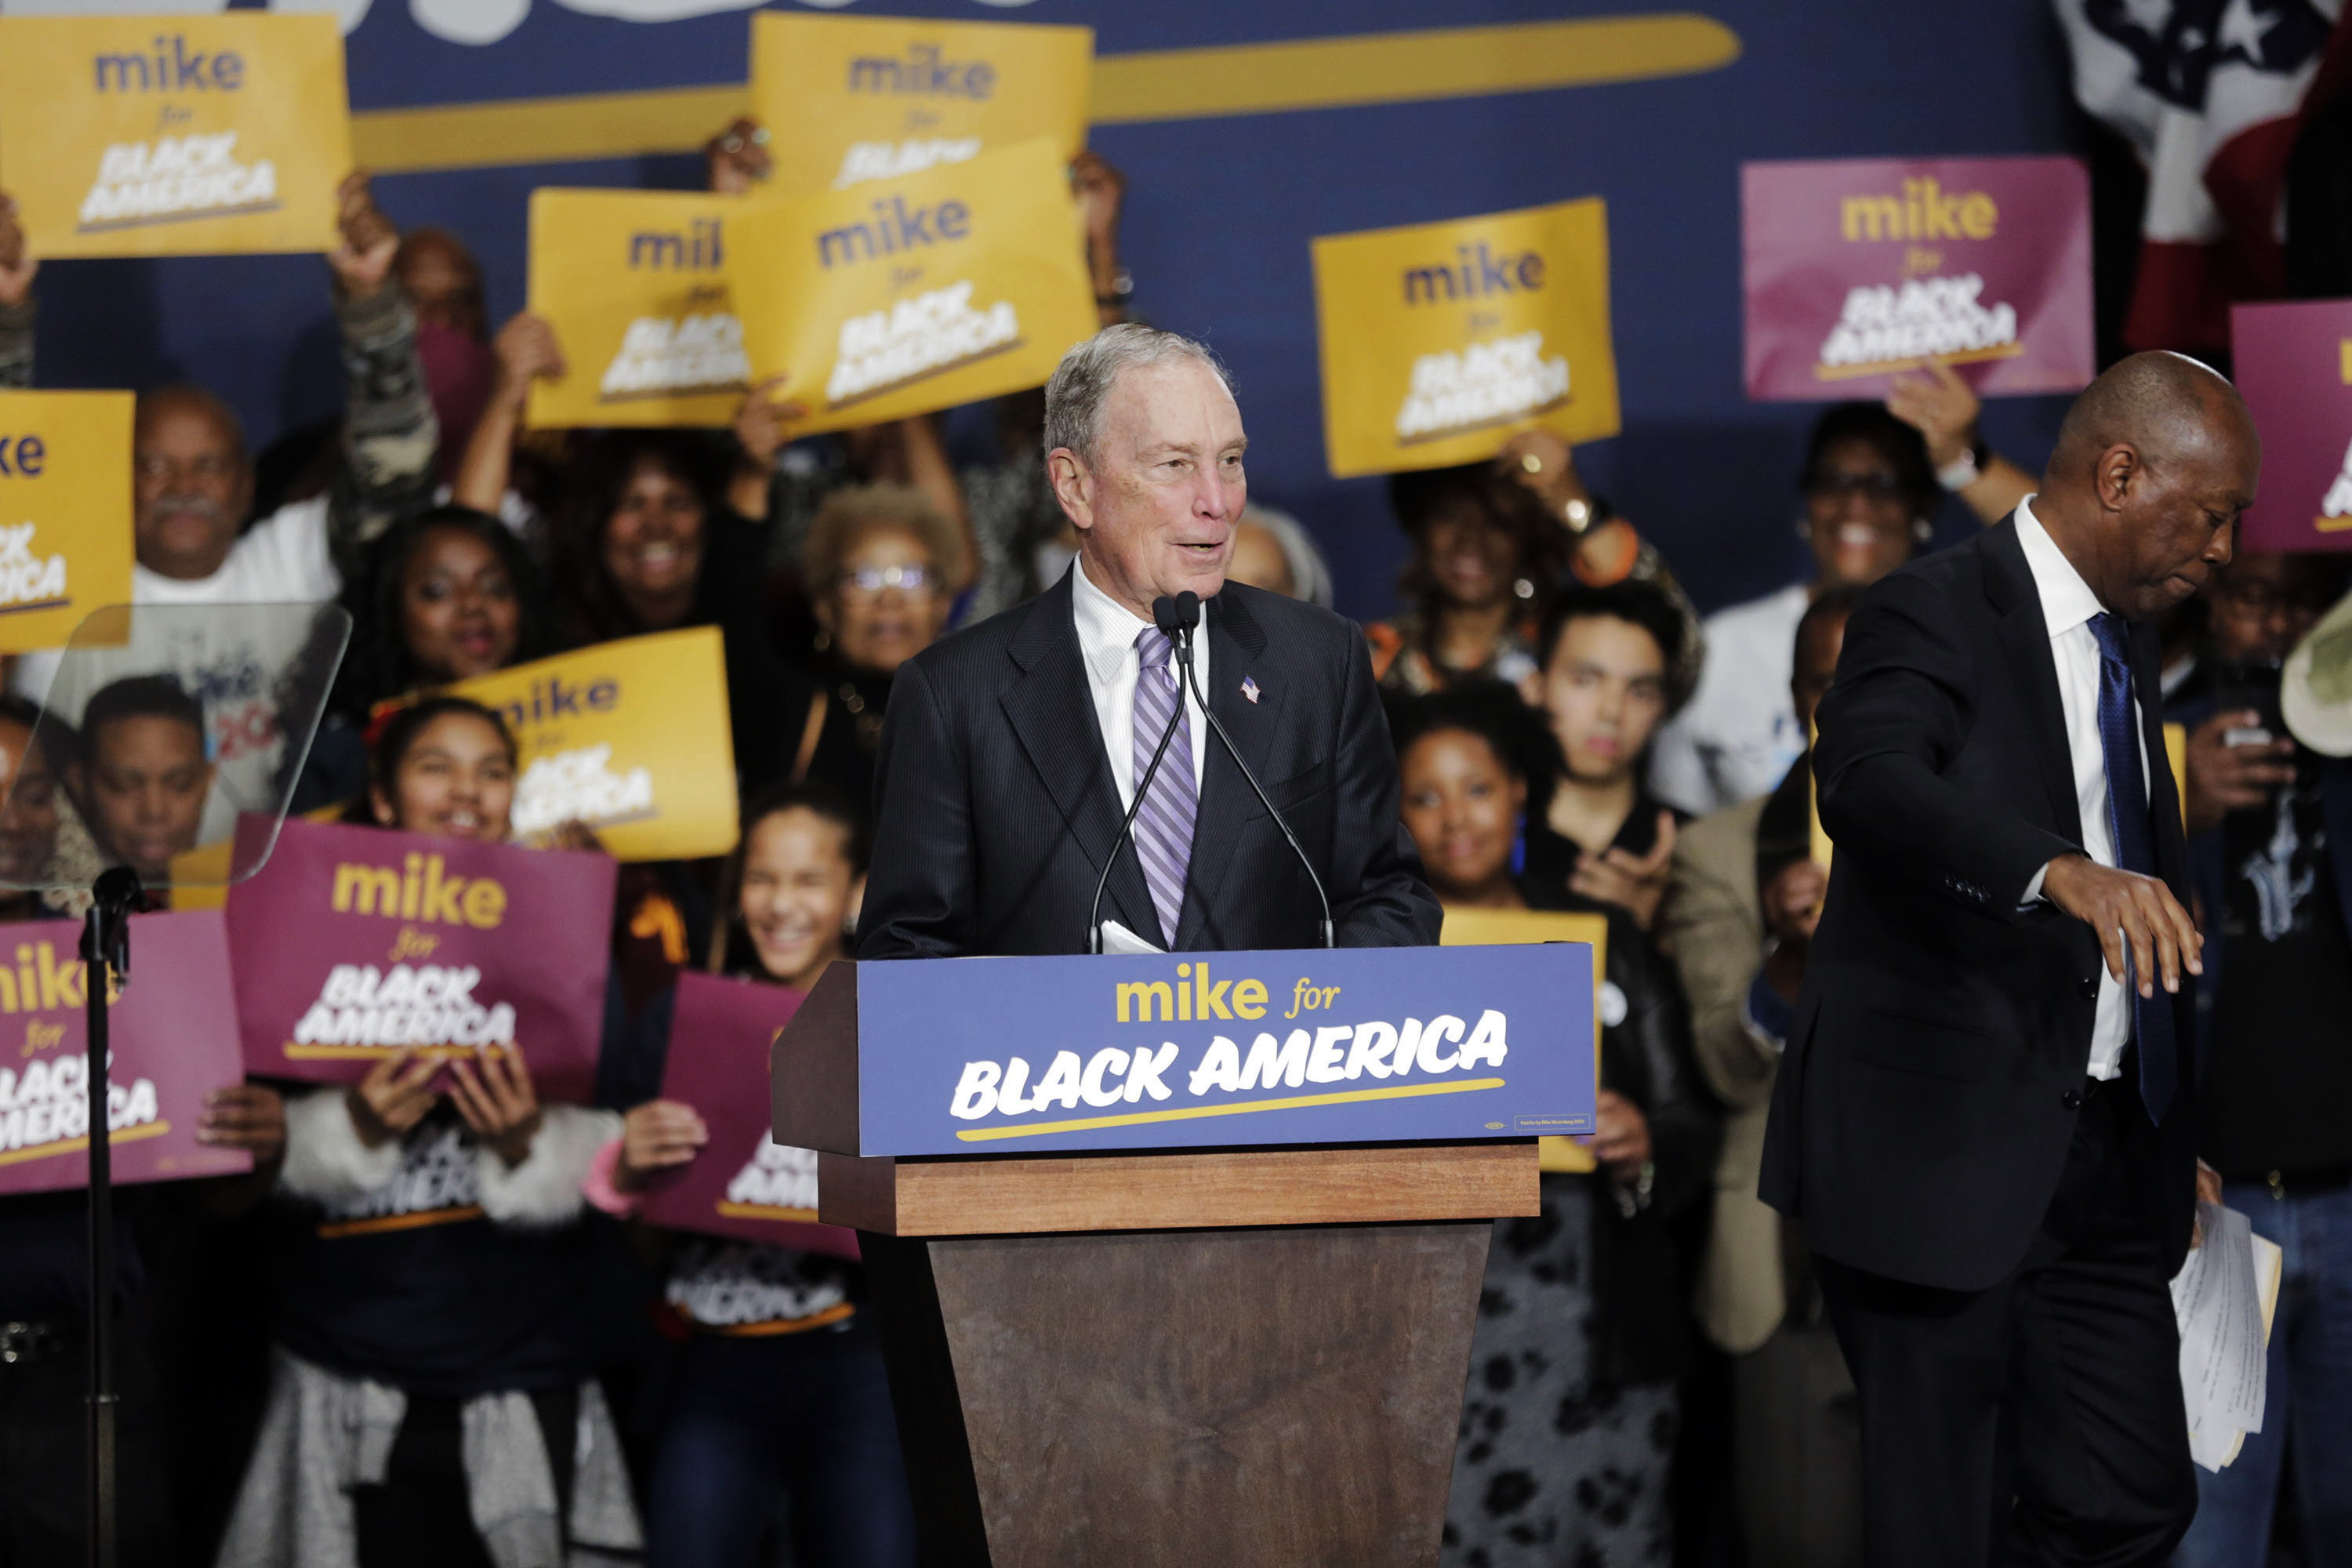 Democratic presidential candidate and former New York City Mayor Michael Bloomberg speaks during a campaign rally at the Buffalo Soldier Museum in Houston, Thursday, Feb. 13, 2020. Houston Mayor Sylvester Turner stands at right.